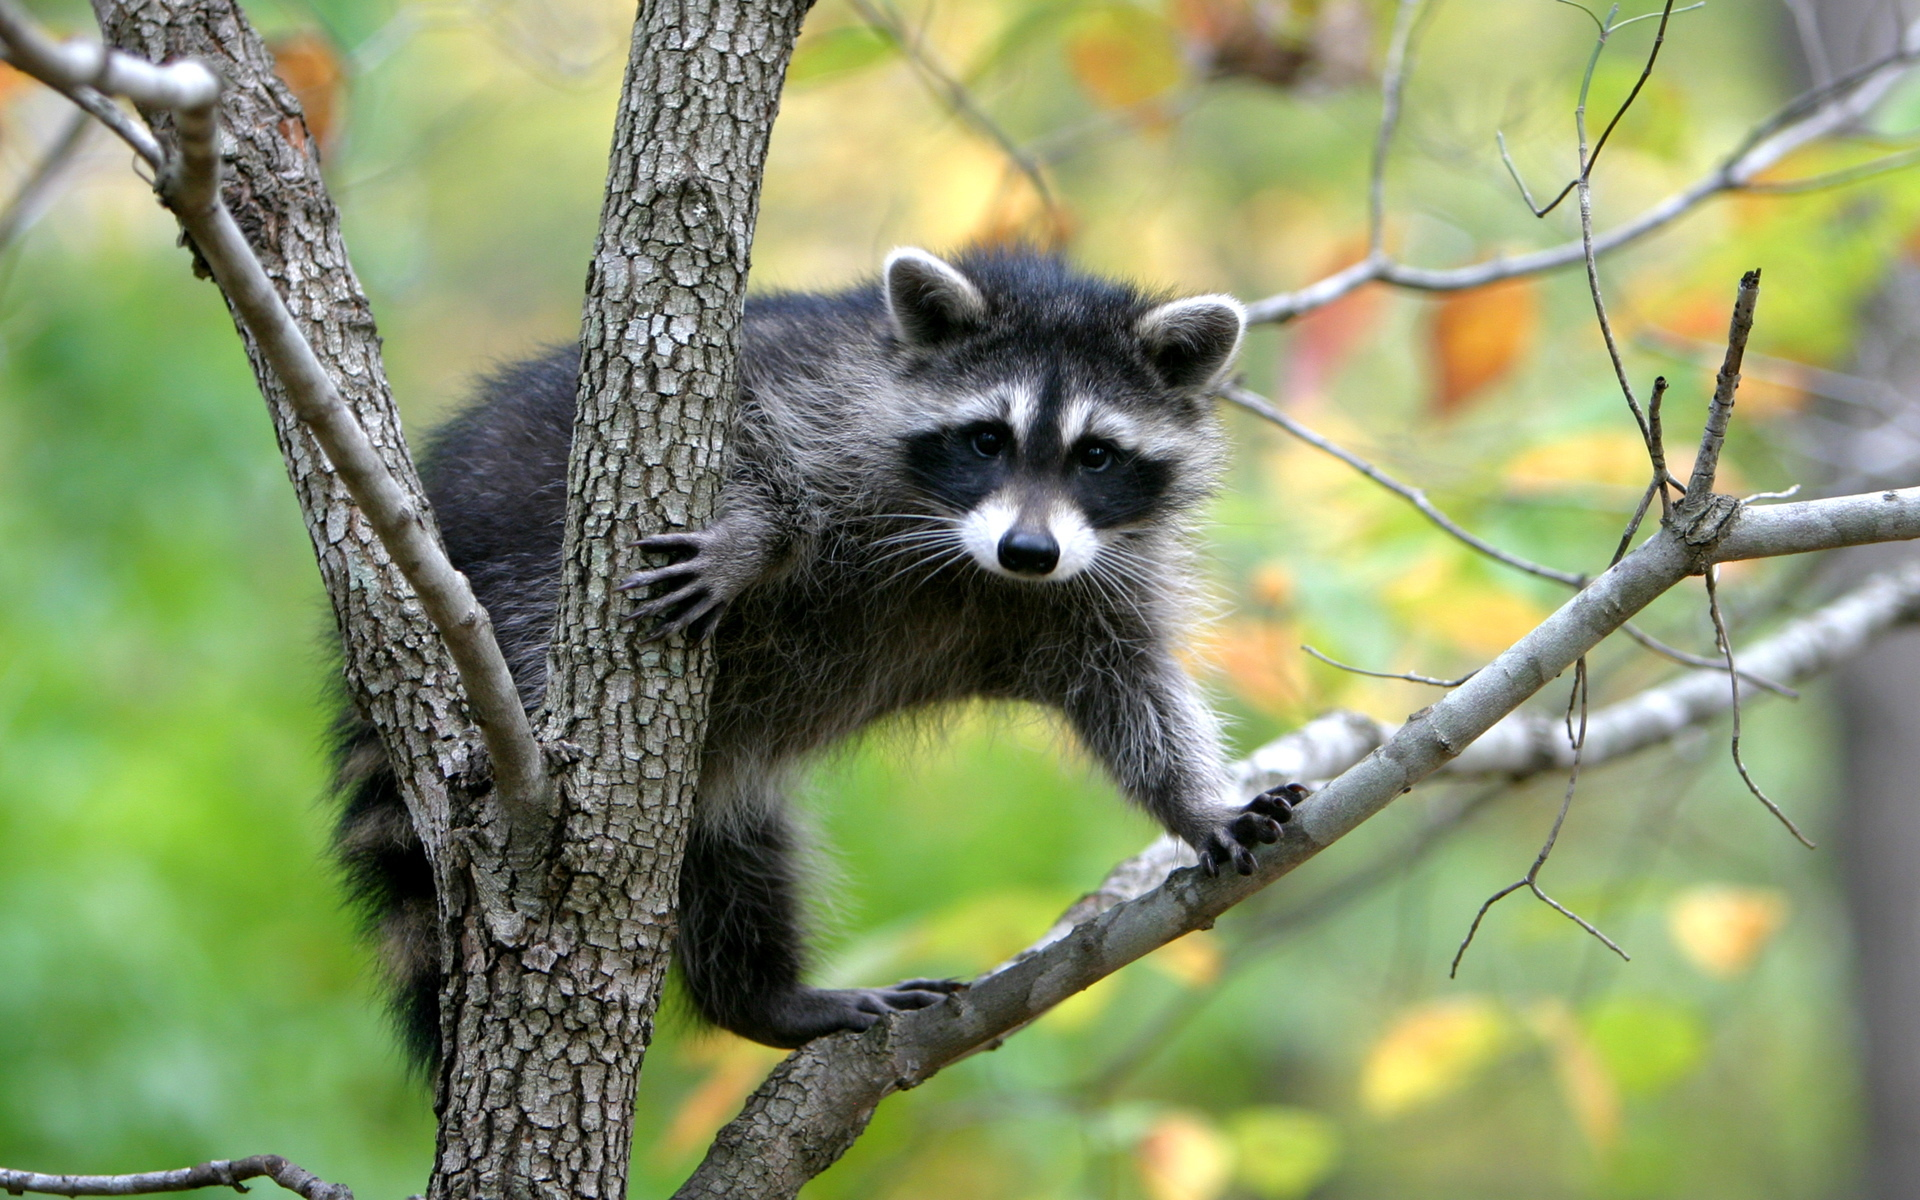 43593 download wallpaper Animals, Raccoons screensavers and pictures for free